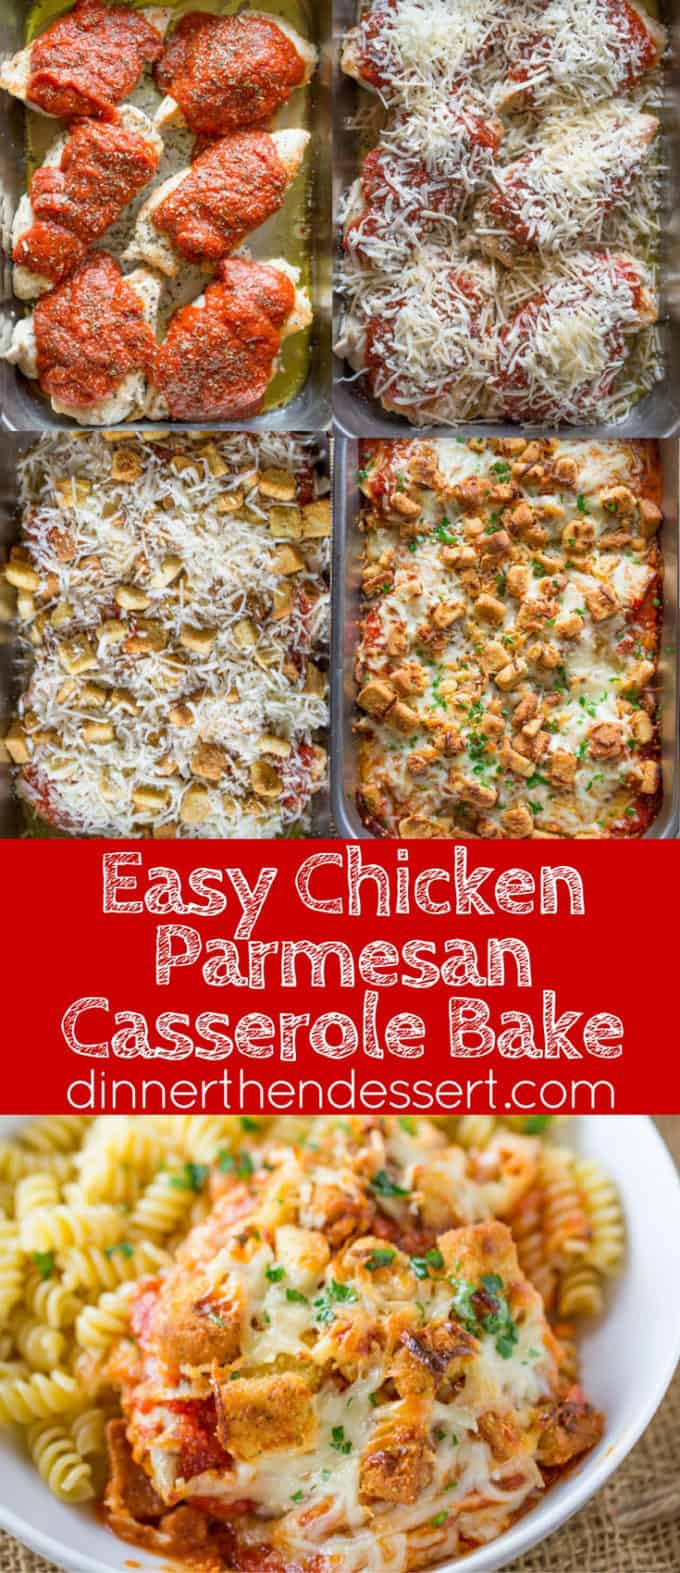 Chicken Parmesan Casserole is a quick weeknight meal that is ready to bake in ten minutes with mozzarella, Parmesan, tomato sauce and a crouton crunch topping for the perfect Chicken Parmesan flavor!